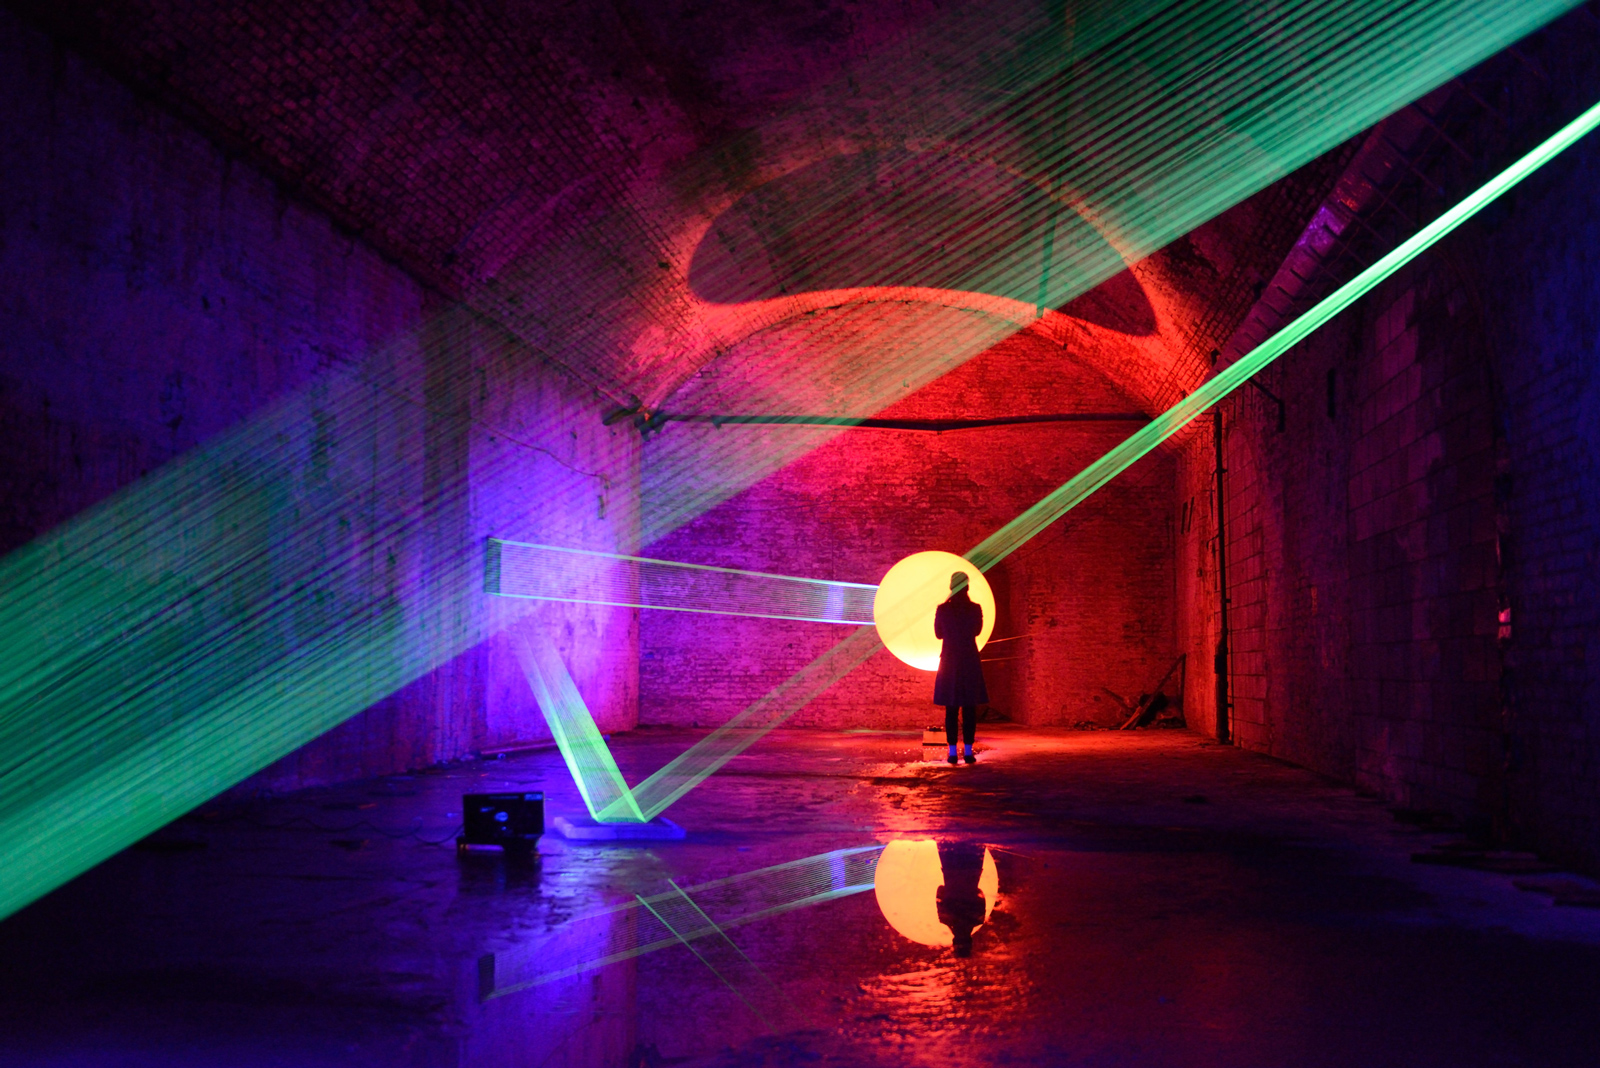 08019 | David Ogle, 2013 | fluorescent fishing line, ultraviolet light, weather balloon | installation view: Royal British Society of Sculptors: Subterranean, Waterloo tunnels, London, 2013 | image: Anne Purkiss